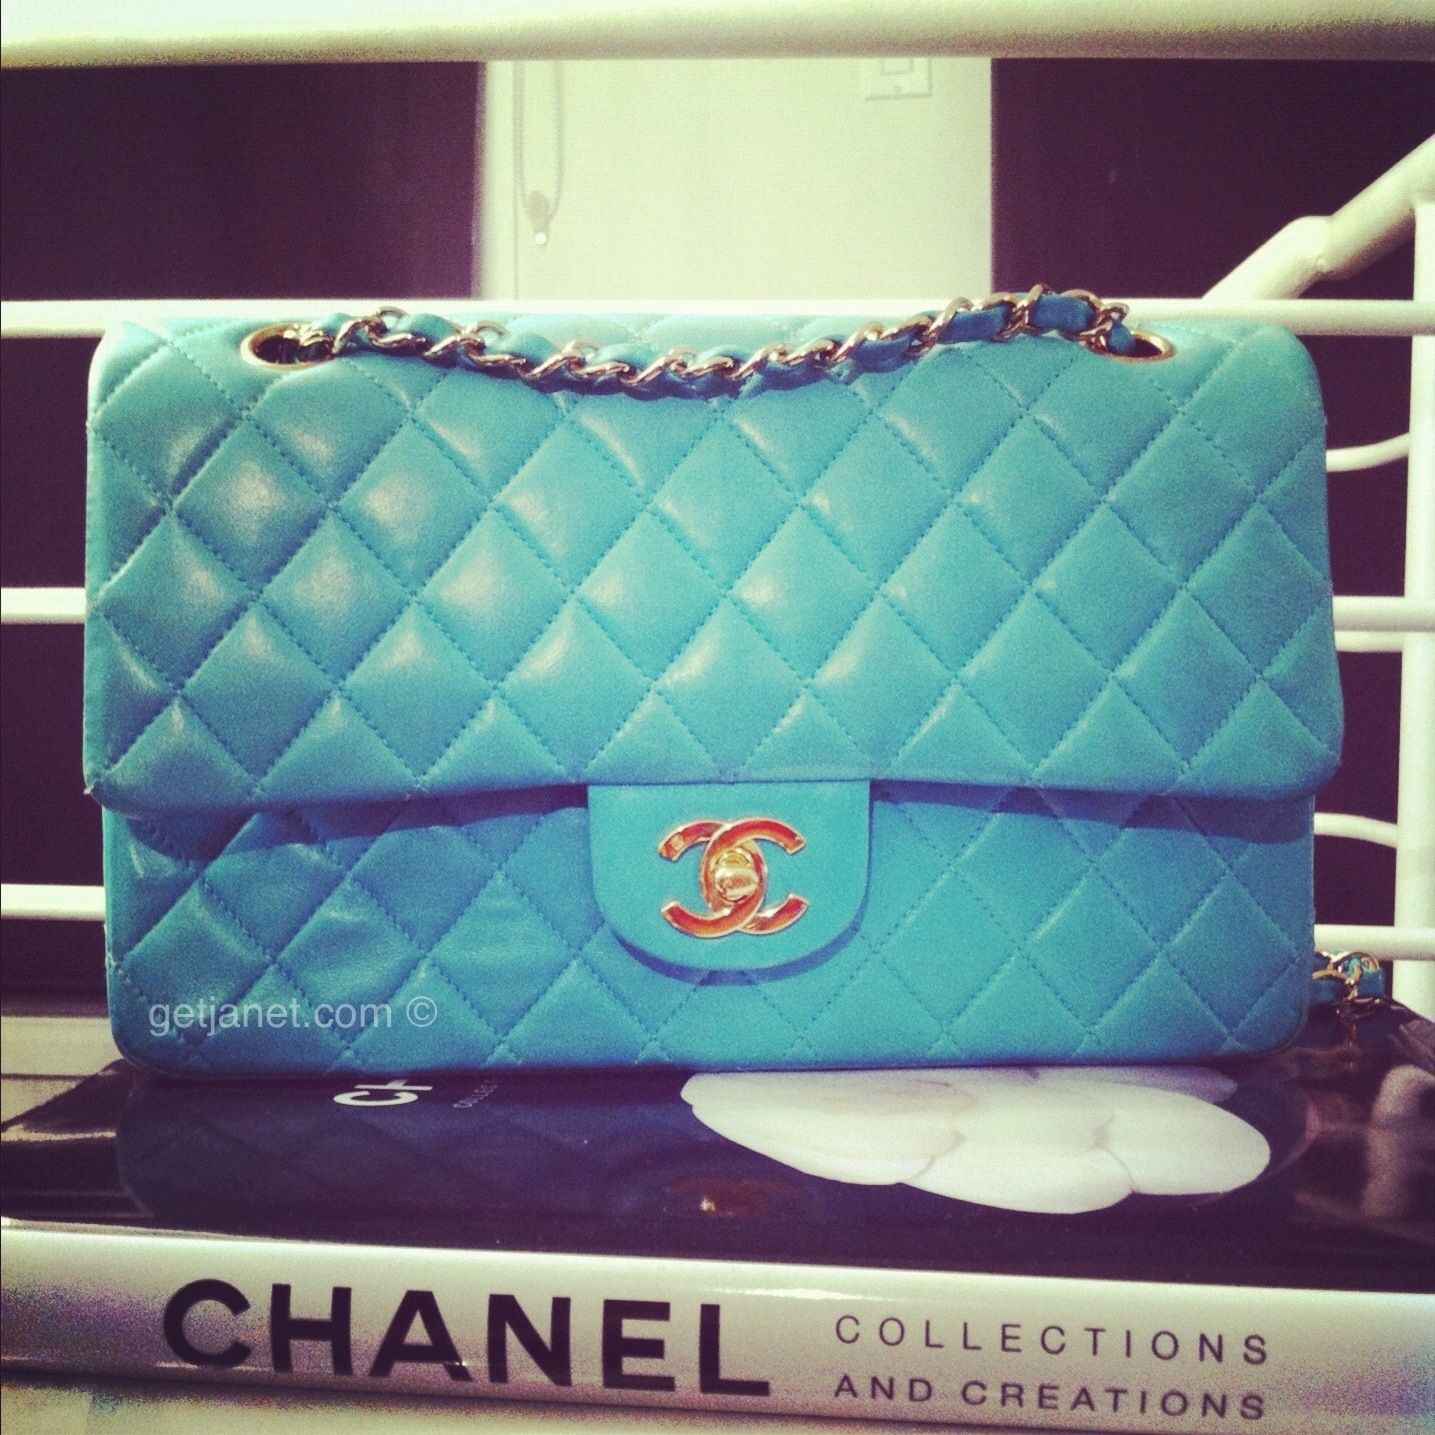 Tiffany Blue Chanel Handbag Lovely Quilted Pattern Chanel Chanel Handbags Modern Handbag